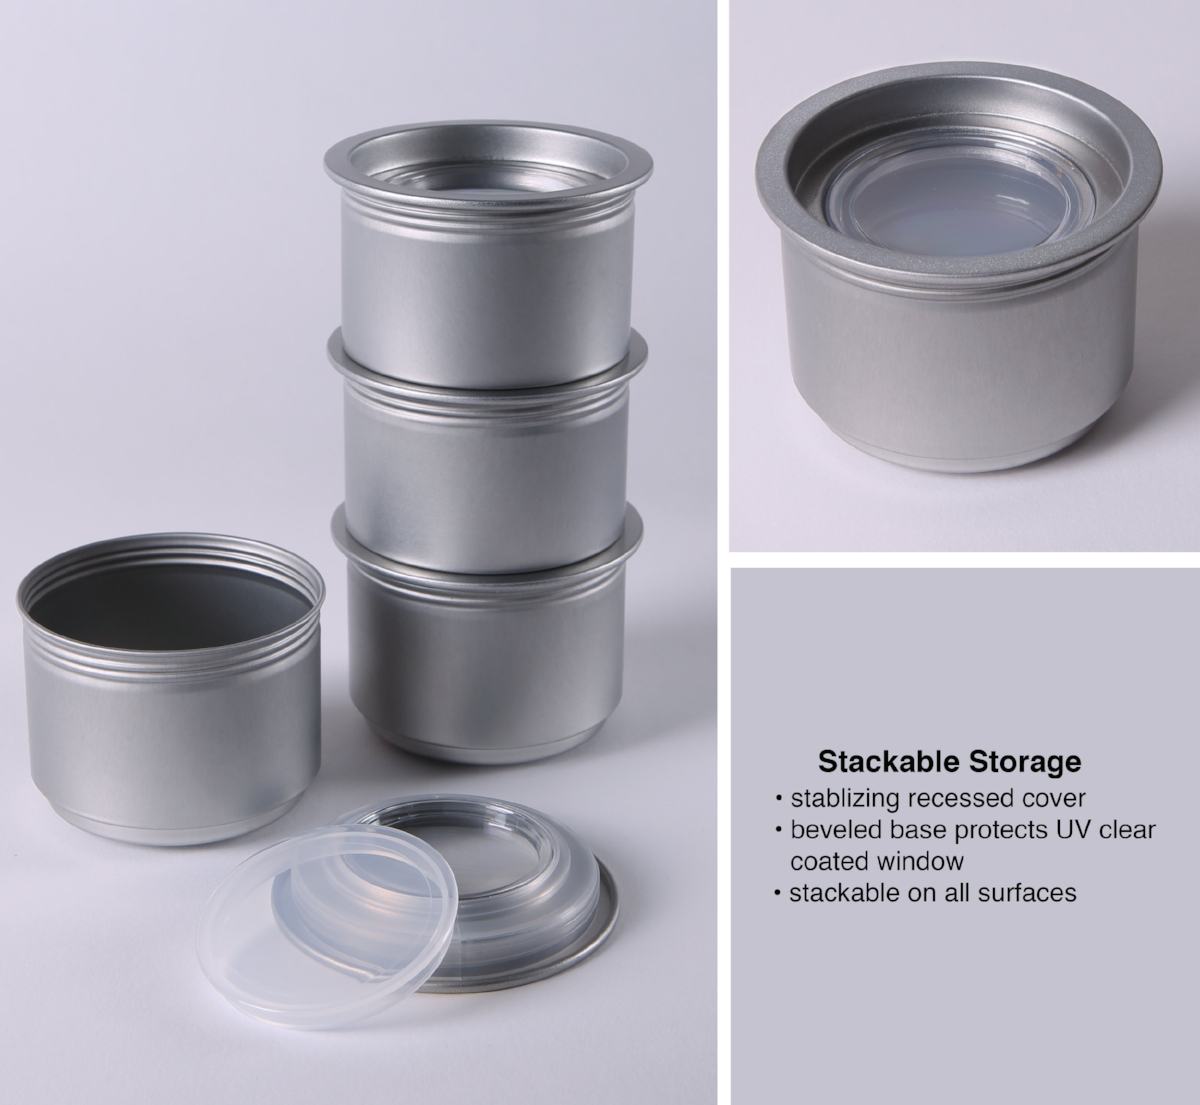 Magnetic or Non-magnetic--both are Stackable